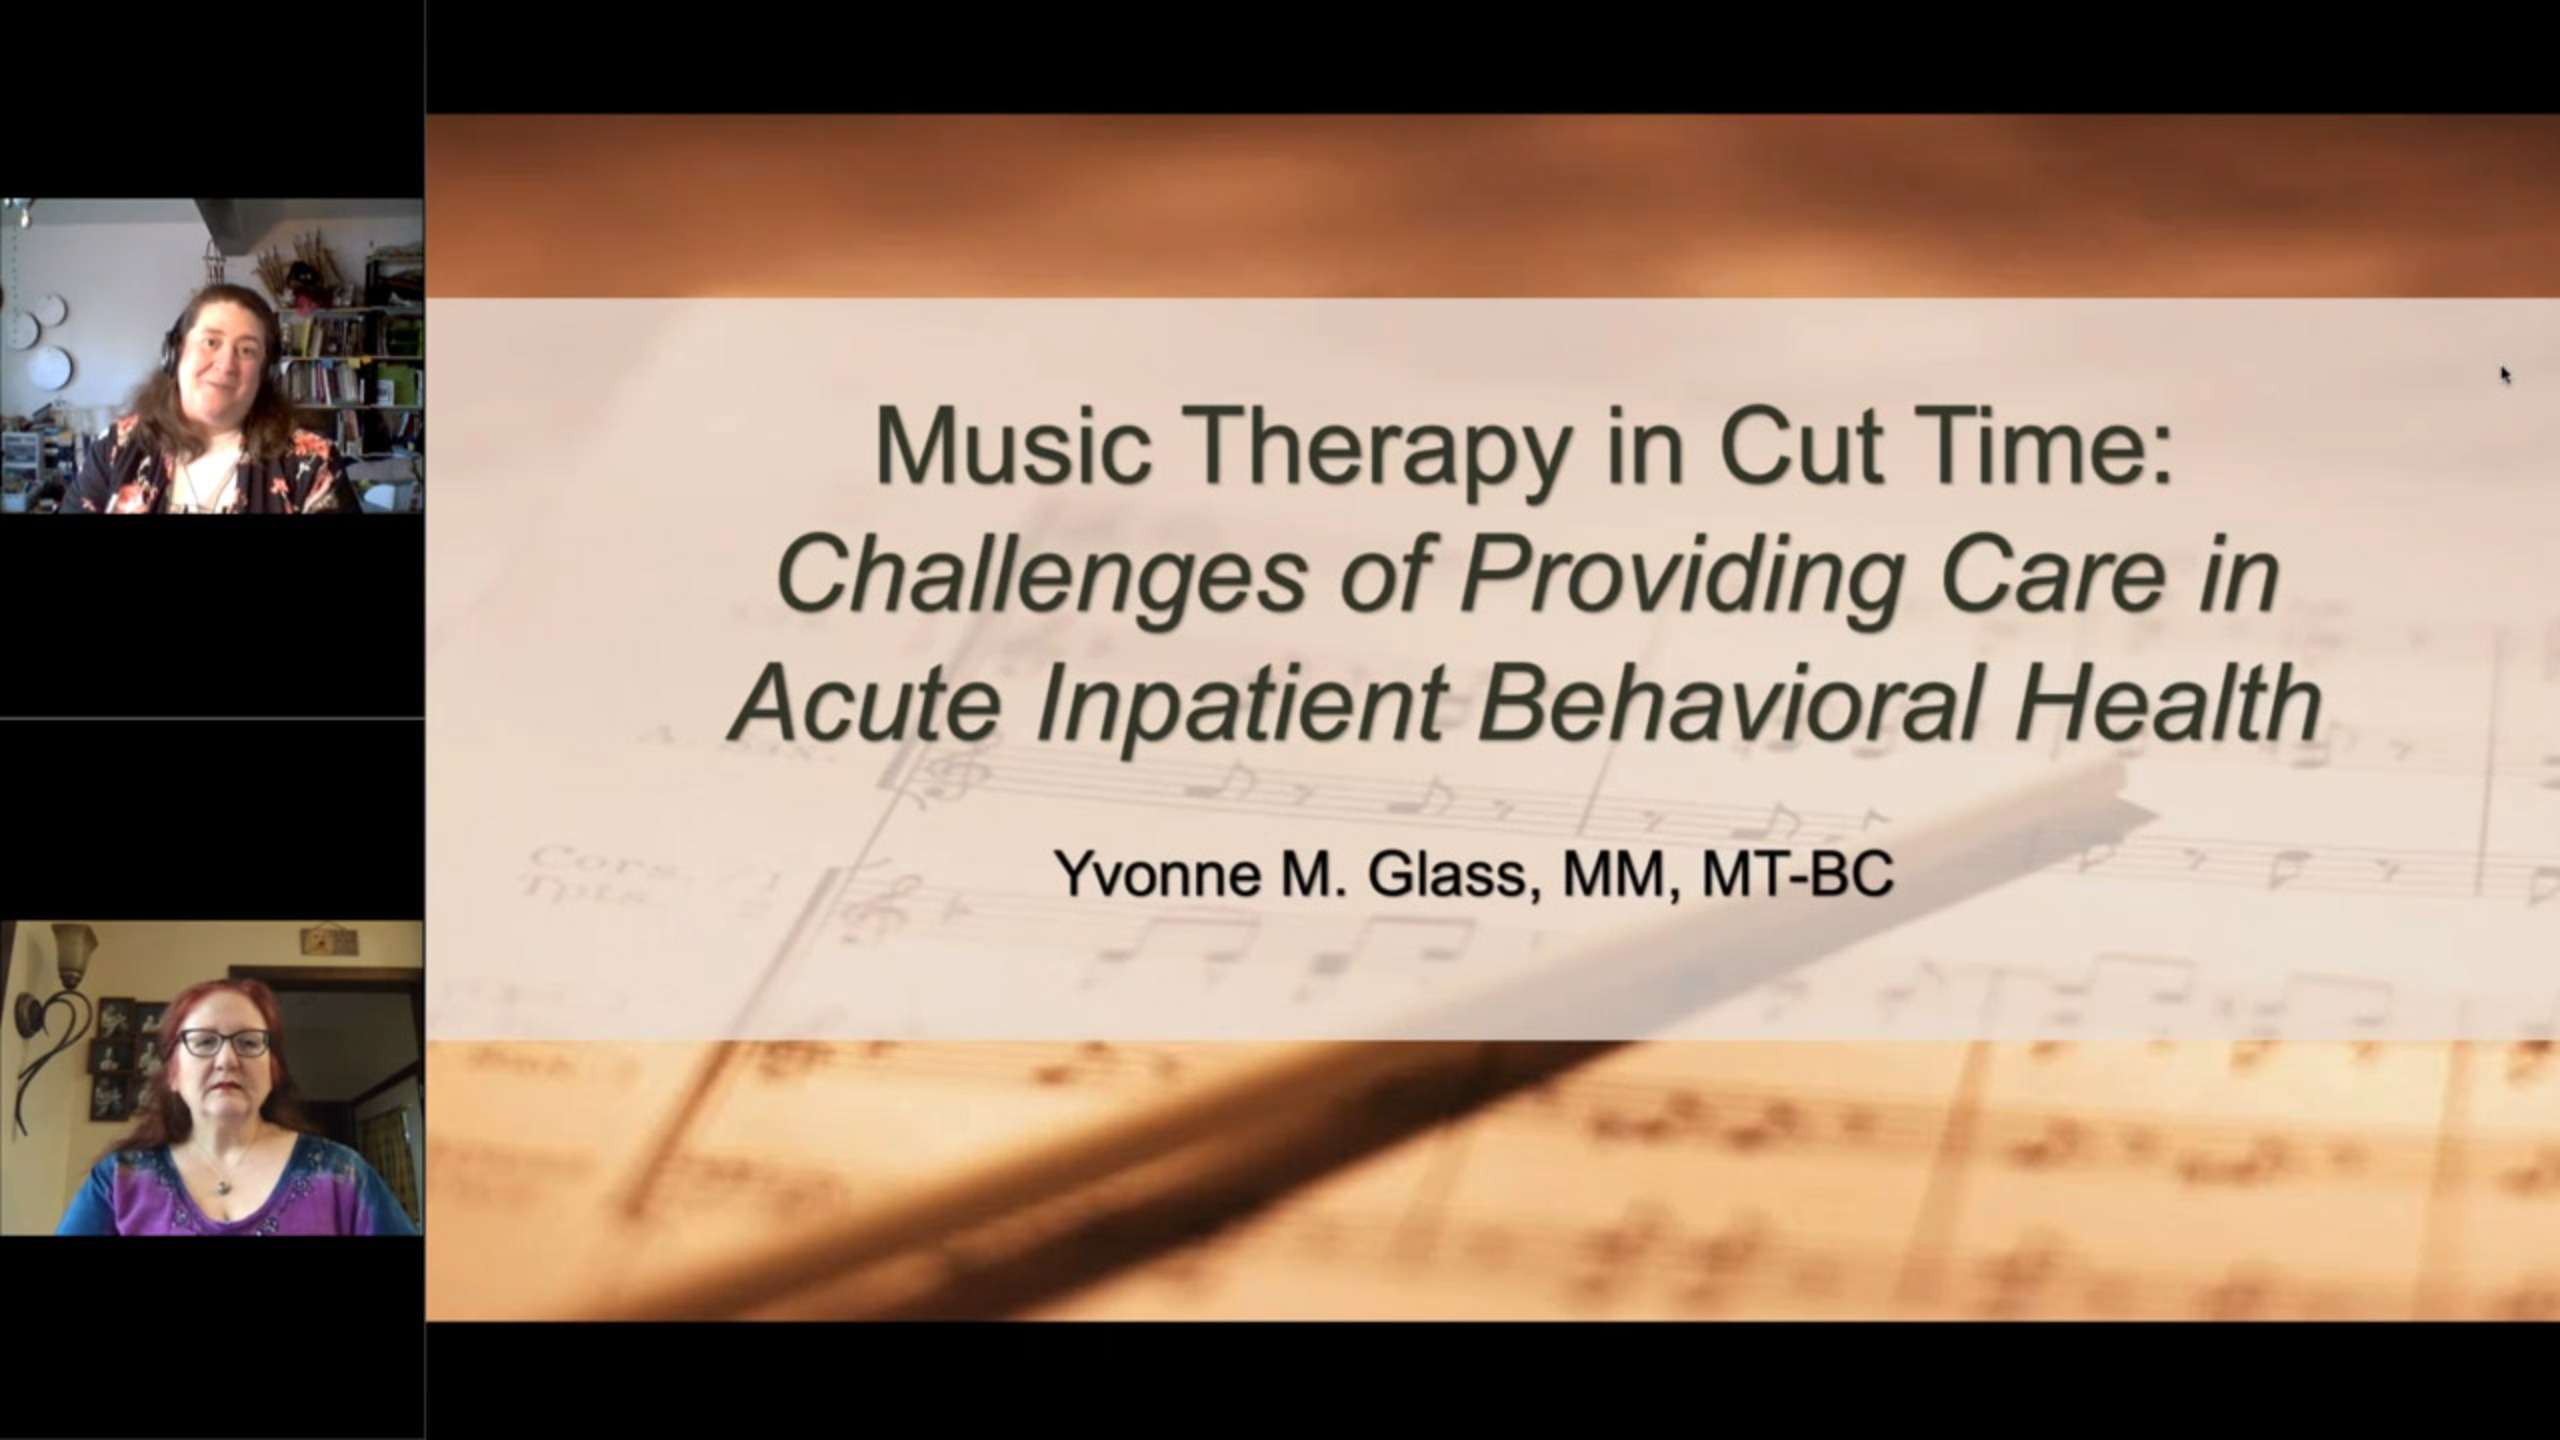 Music Therapy in Cut-Time: Challenges of Providing Care in Acute Inpatient Behavioral Health